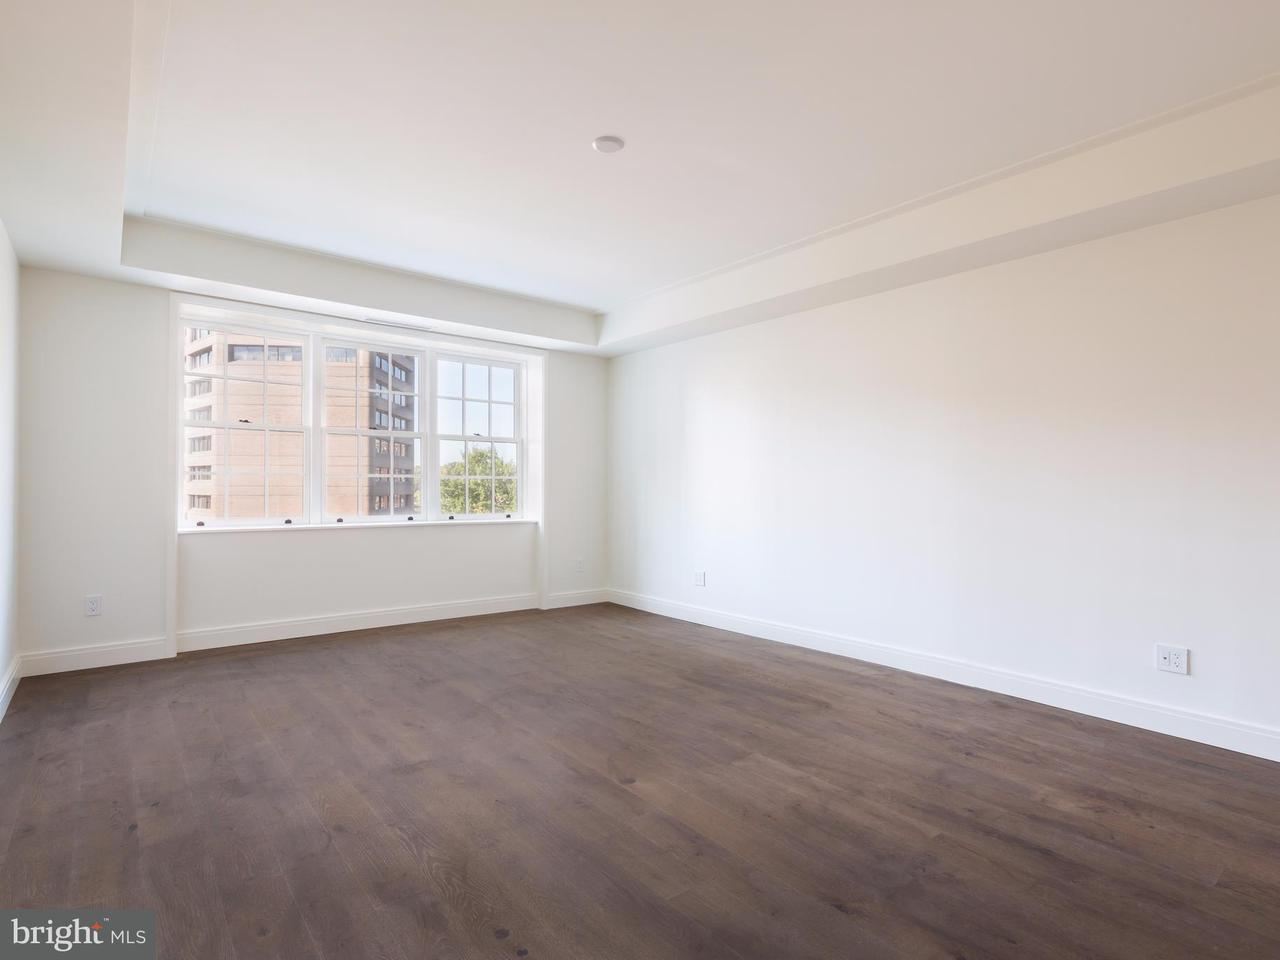 Additional photo for property listing at 2660 Connecticut Ave Nw #5b 2660 Connecticut Ave Nw #5b 华盛顿市, 哥伦比亚特区 20008 美国